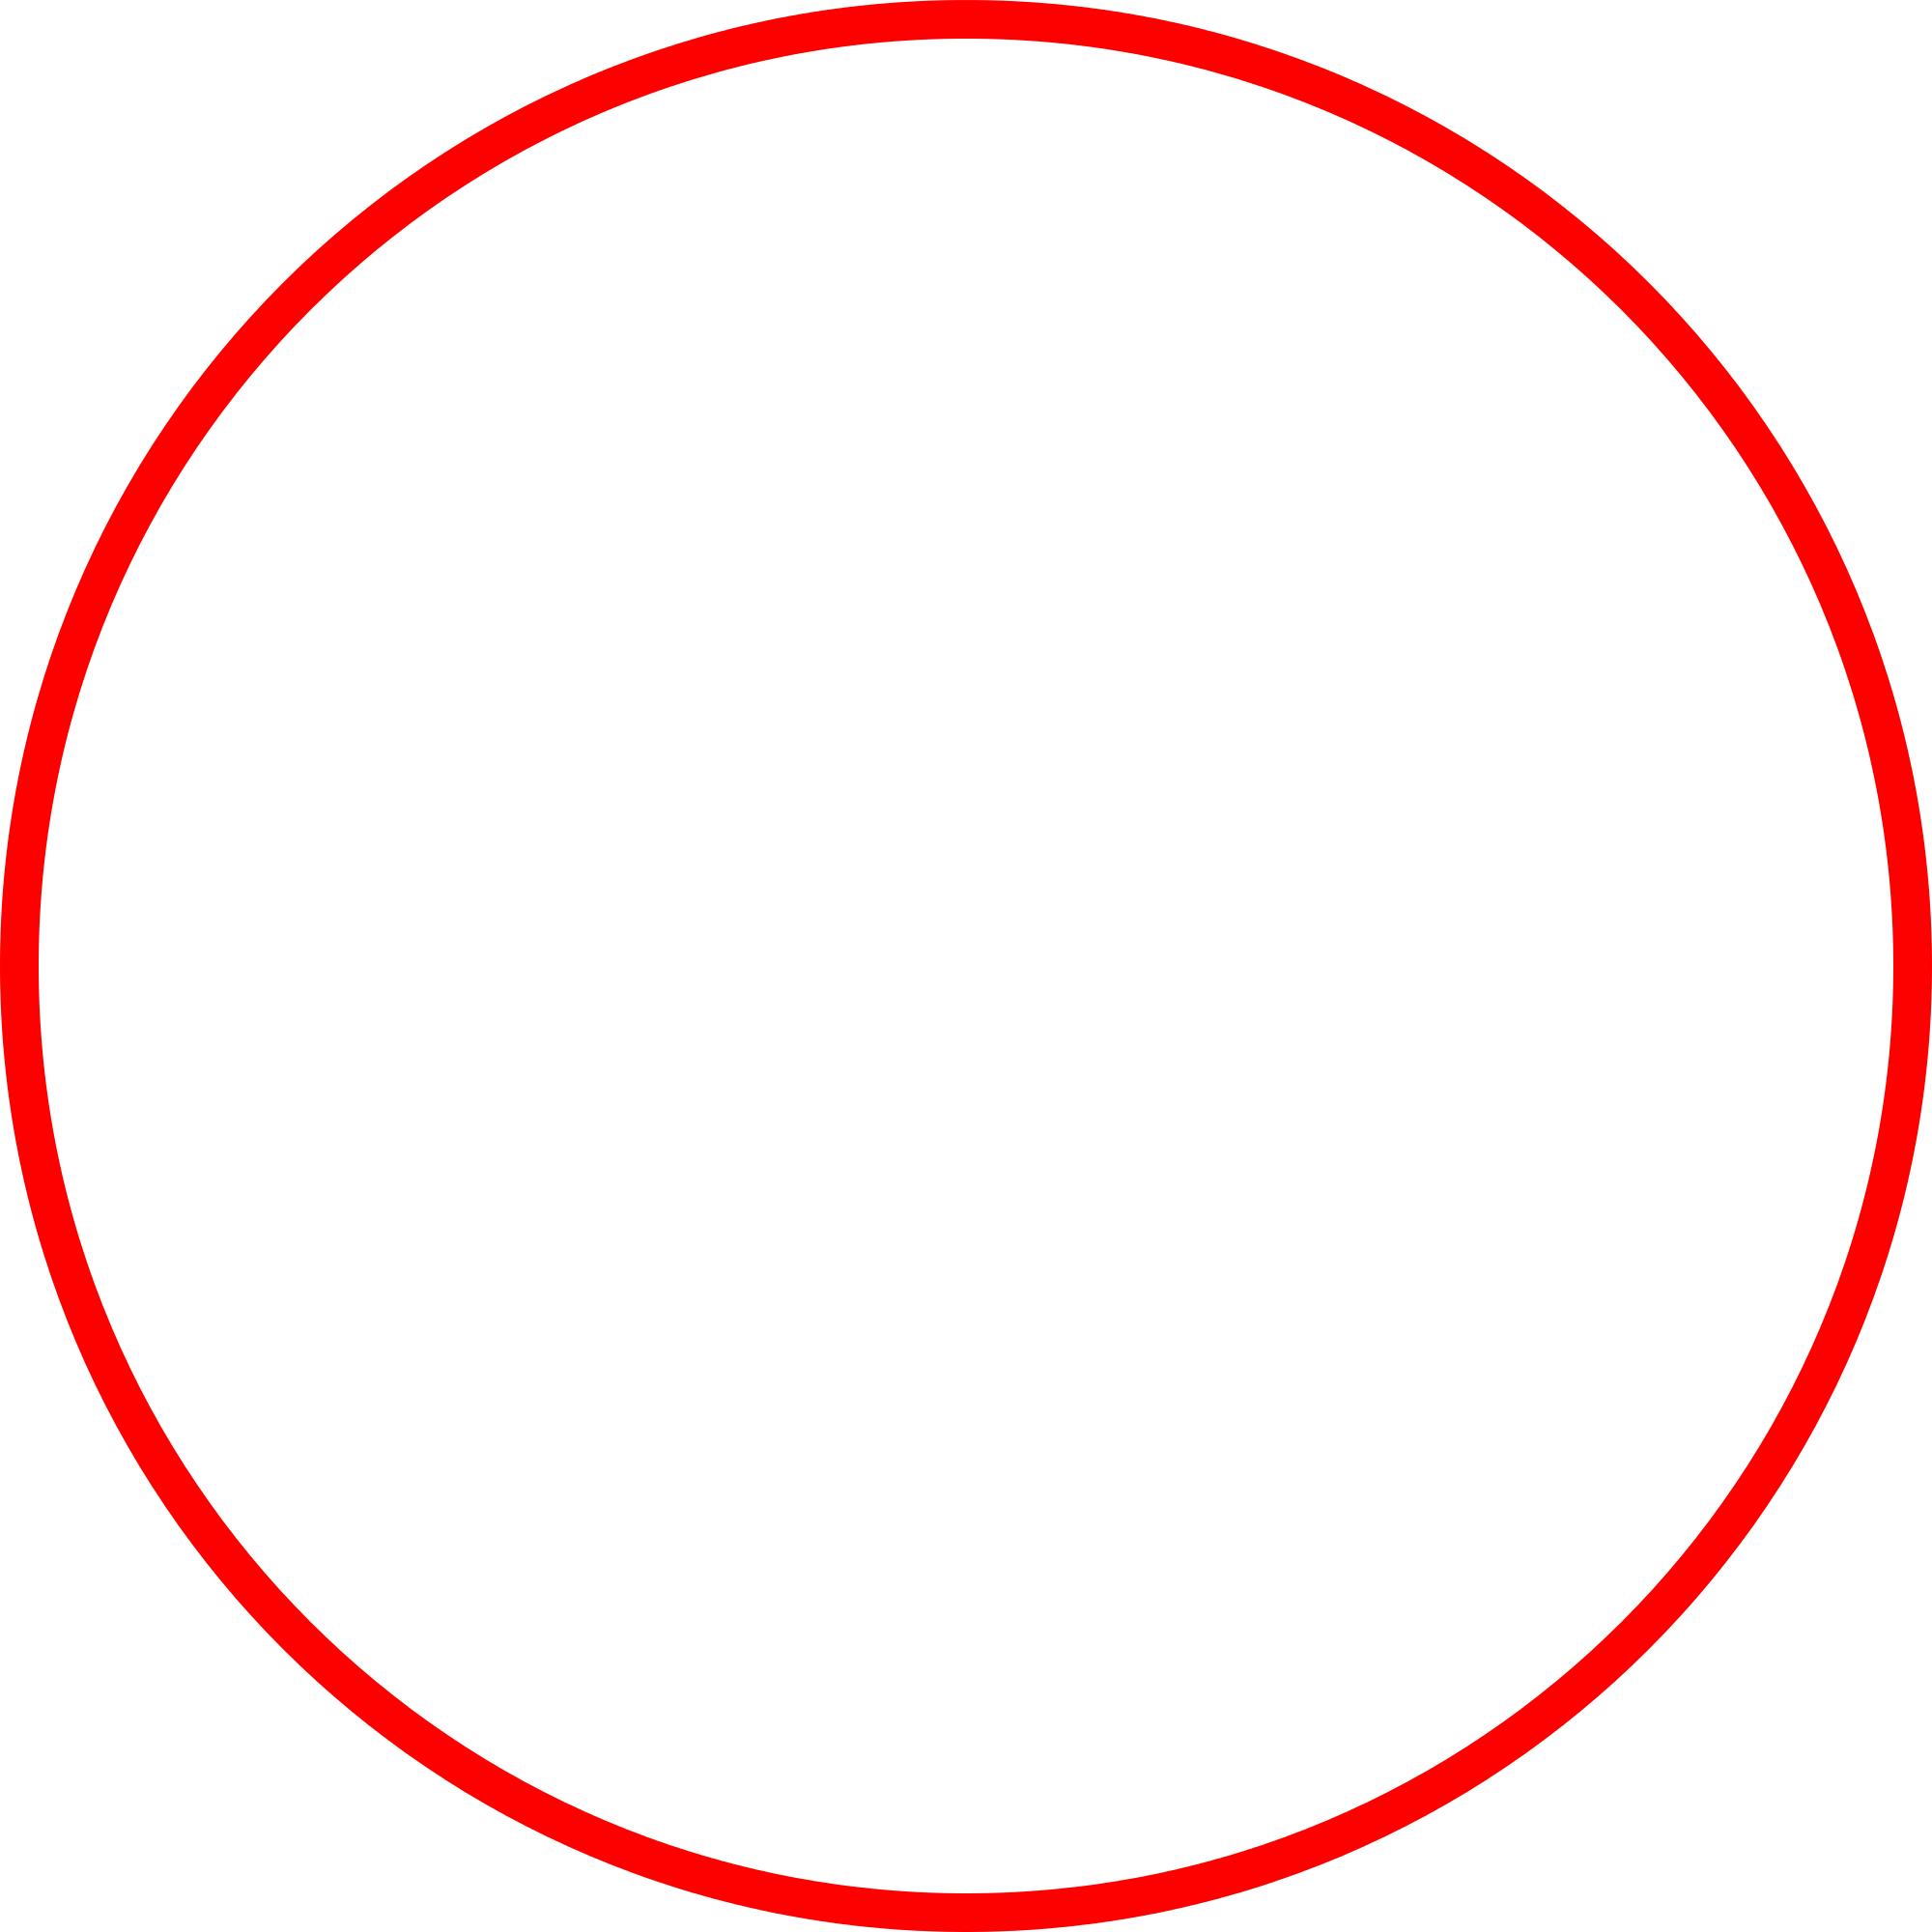 Circle outline png. Images transparent free download